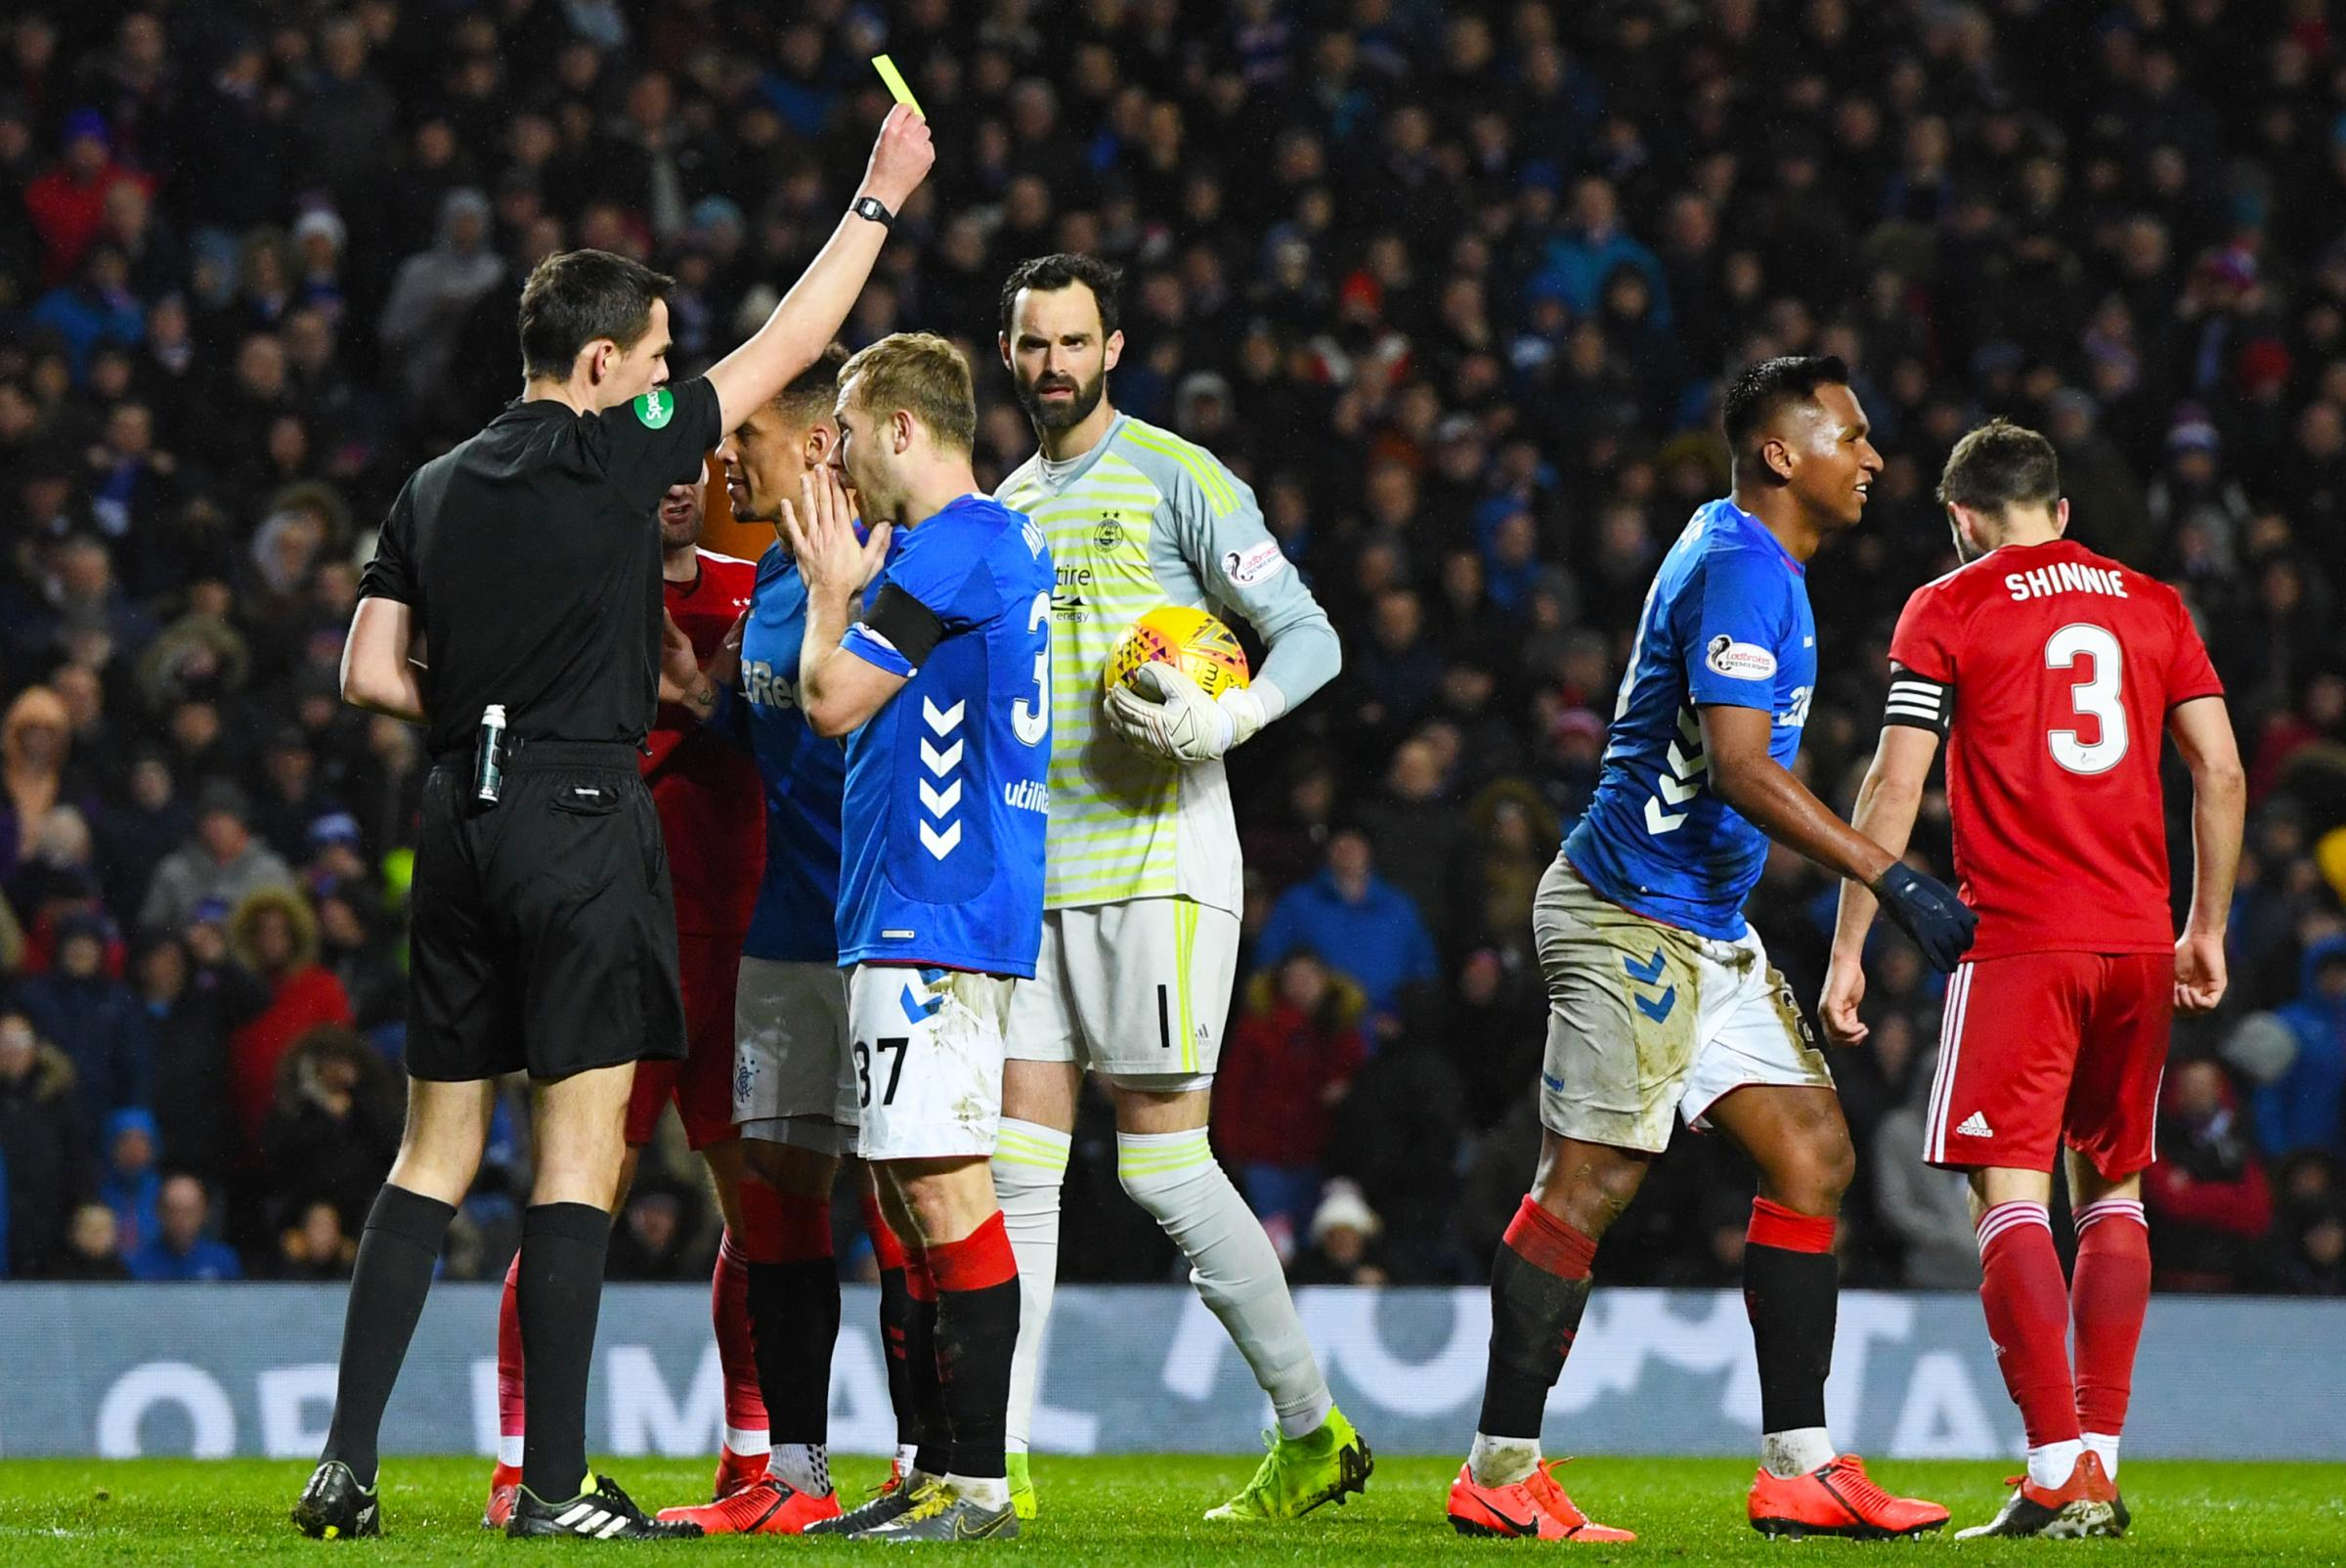 It was a foul! Steven Gerrard insists Rangers were right to appeal against Alfredo Morelos yellow